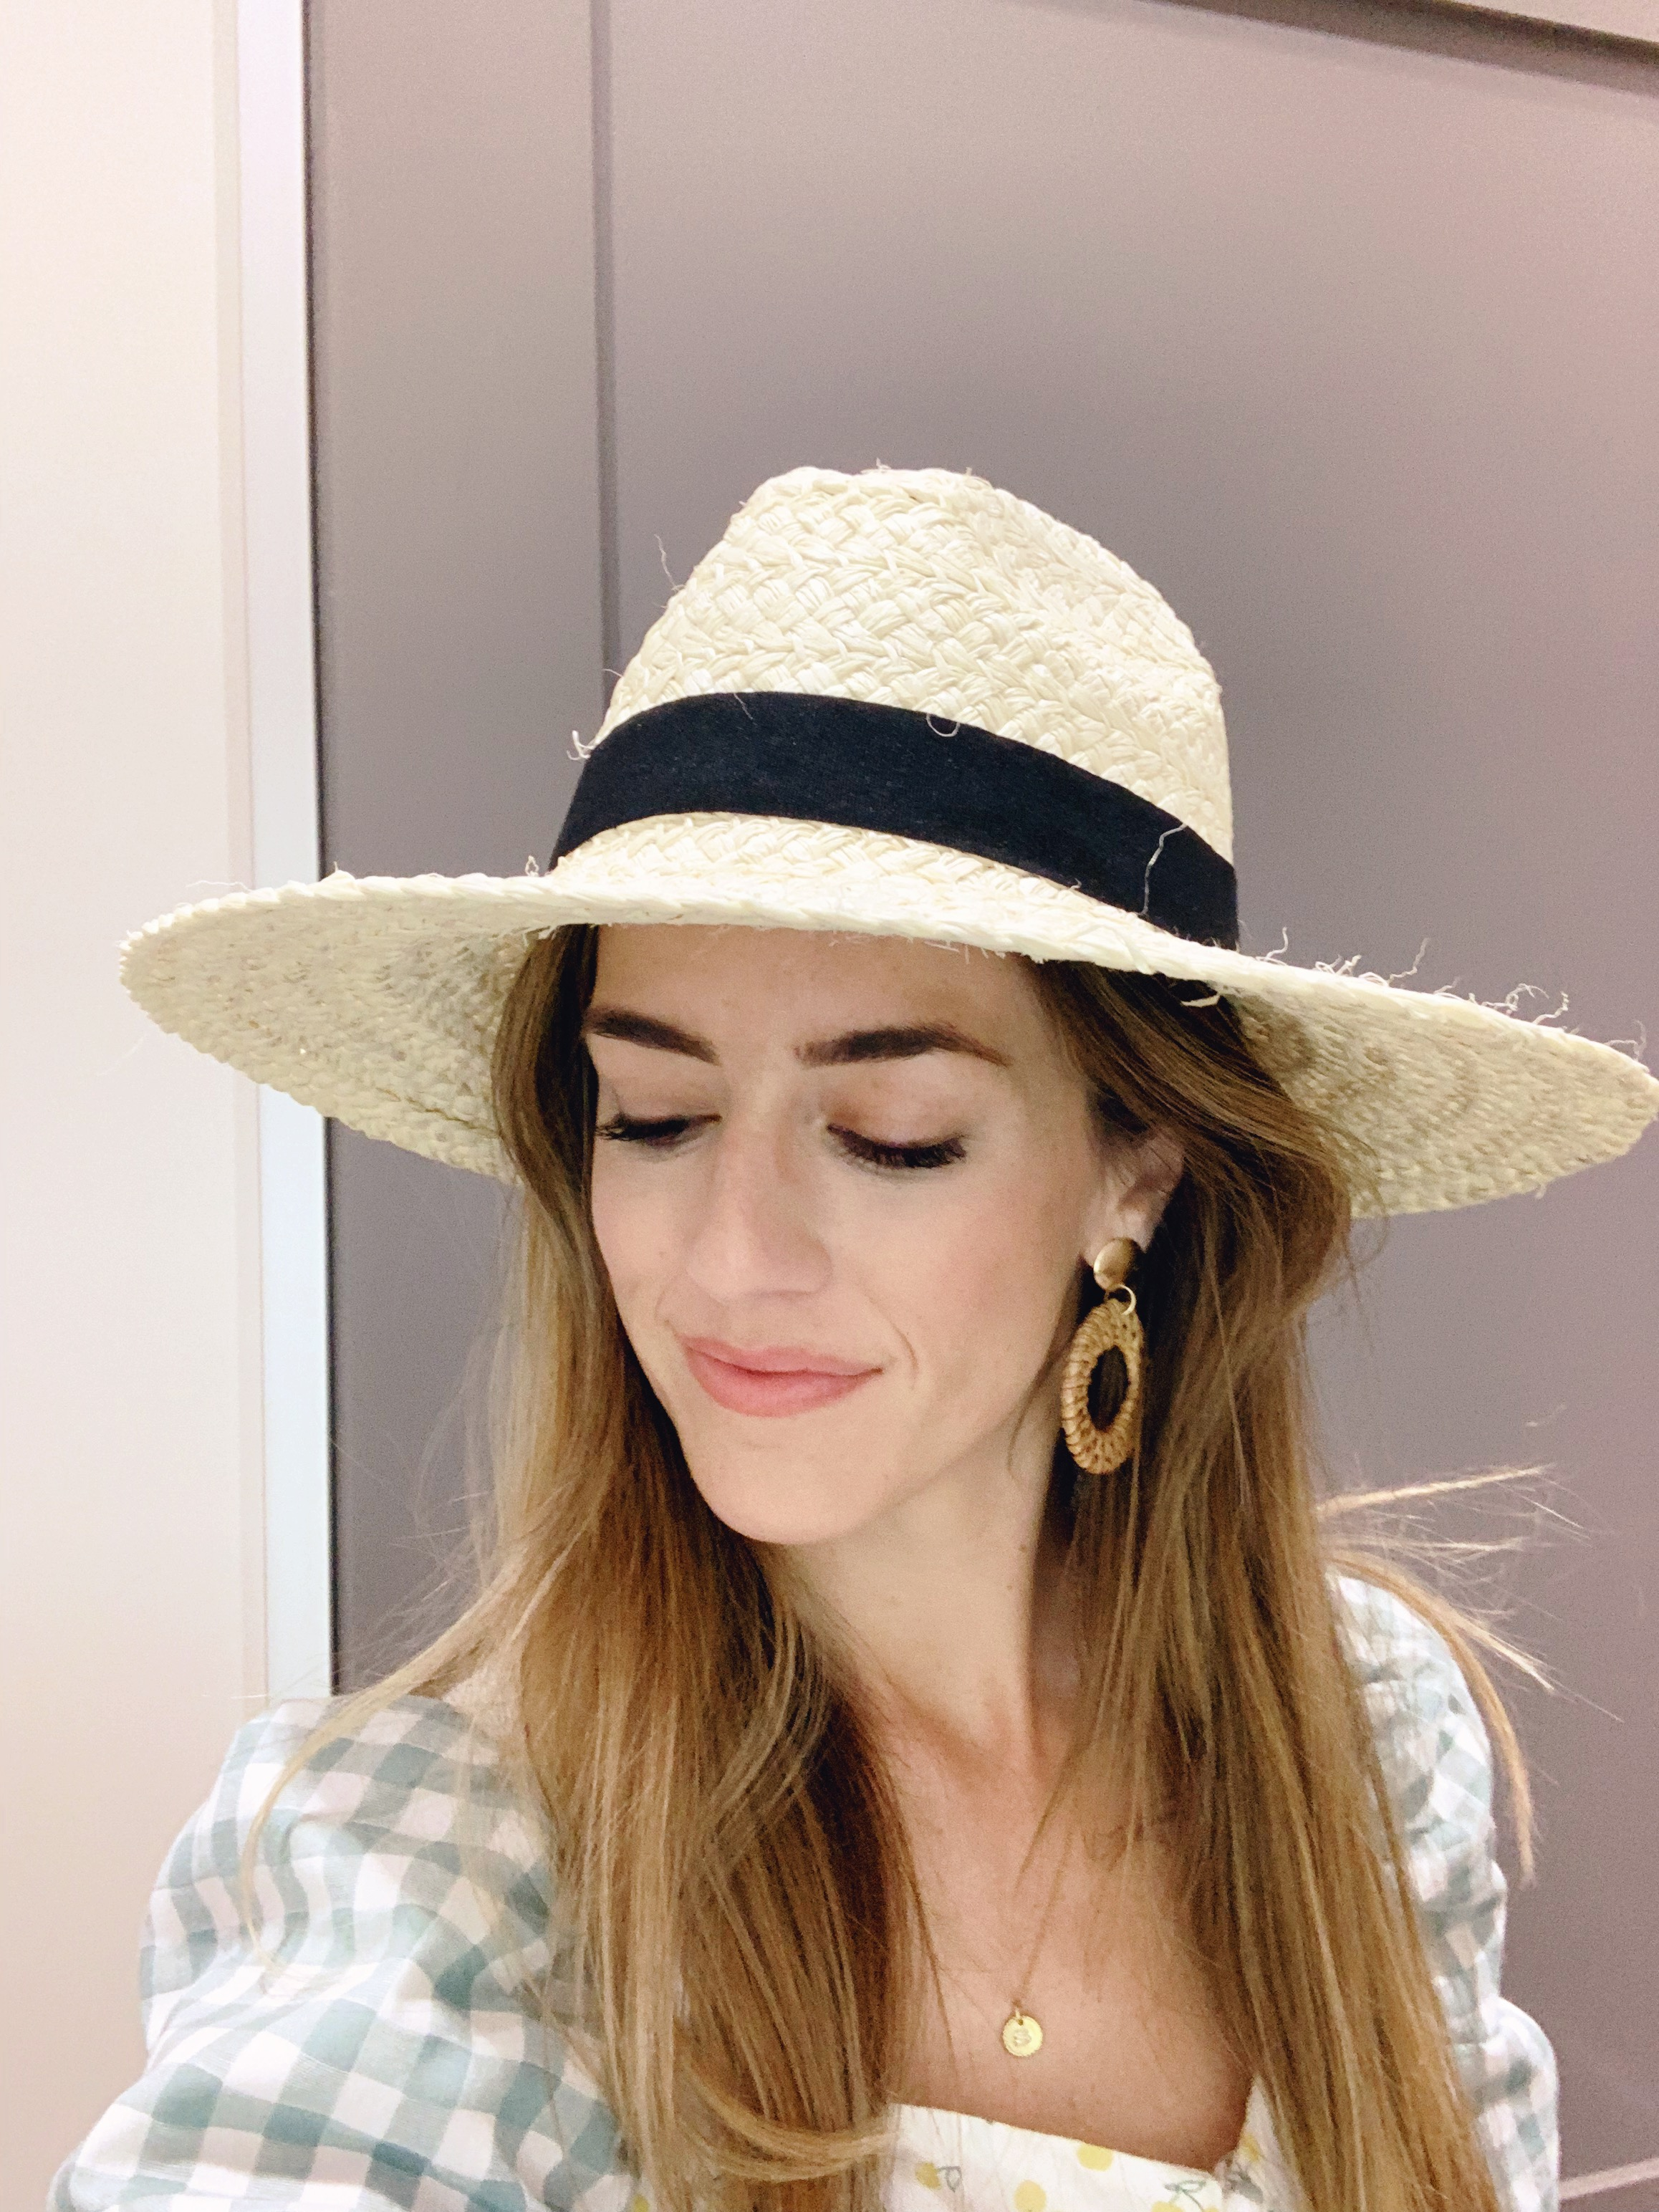 This is such a great knock off of the straw hat that I have been wearing constantly i purchased from Nordstrom. The straw is softer so its not as structured of a hat but it still holds its shape really nicely unlike a floppy straw hat. Currently on sale for $16.99.